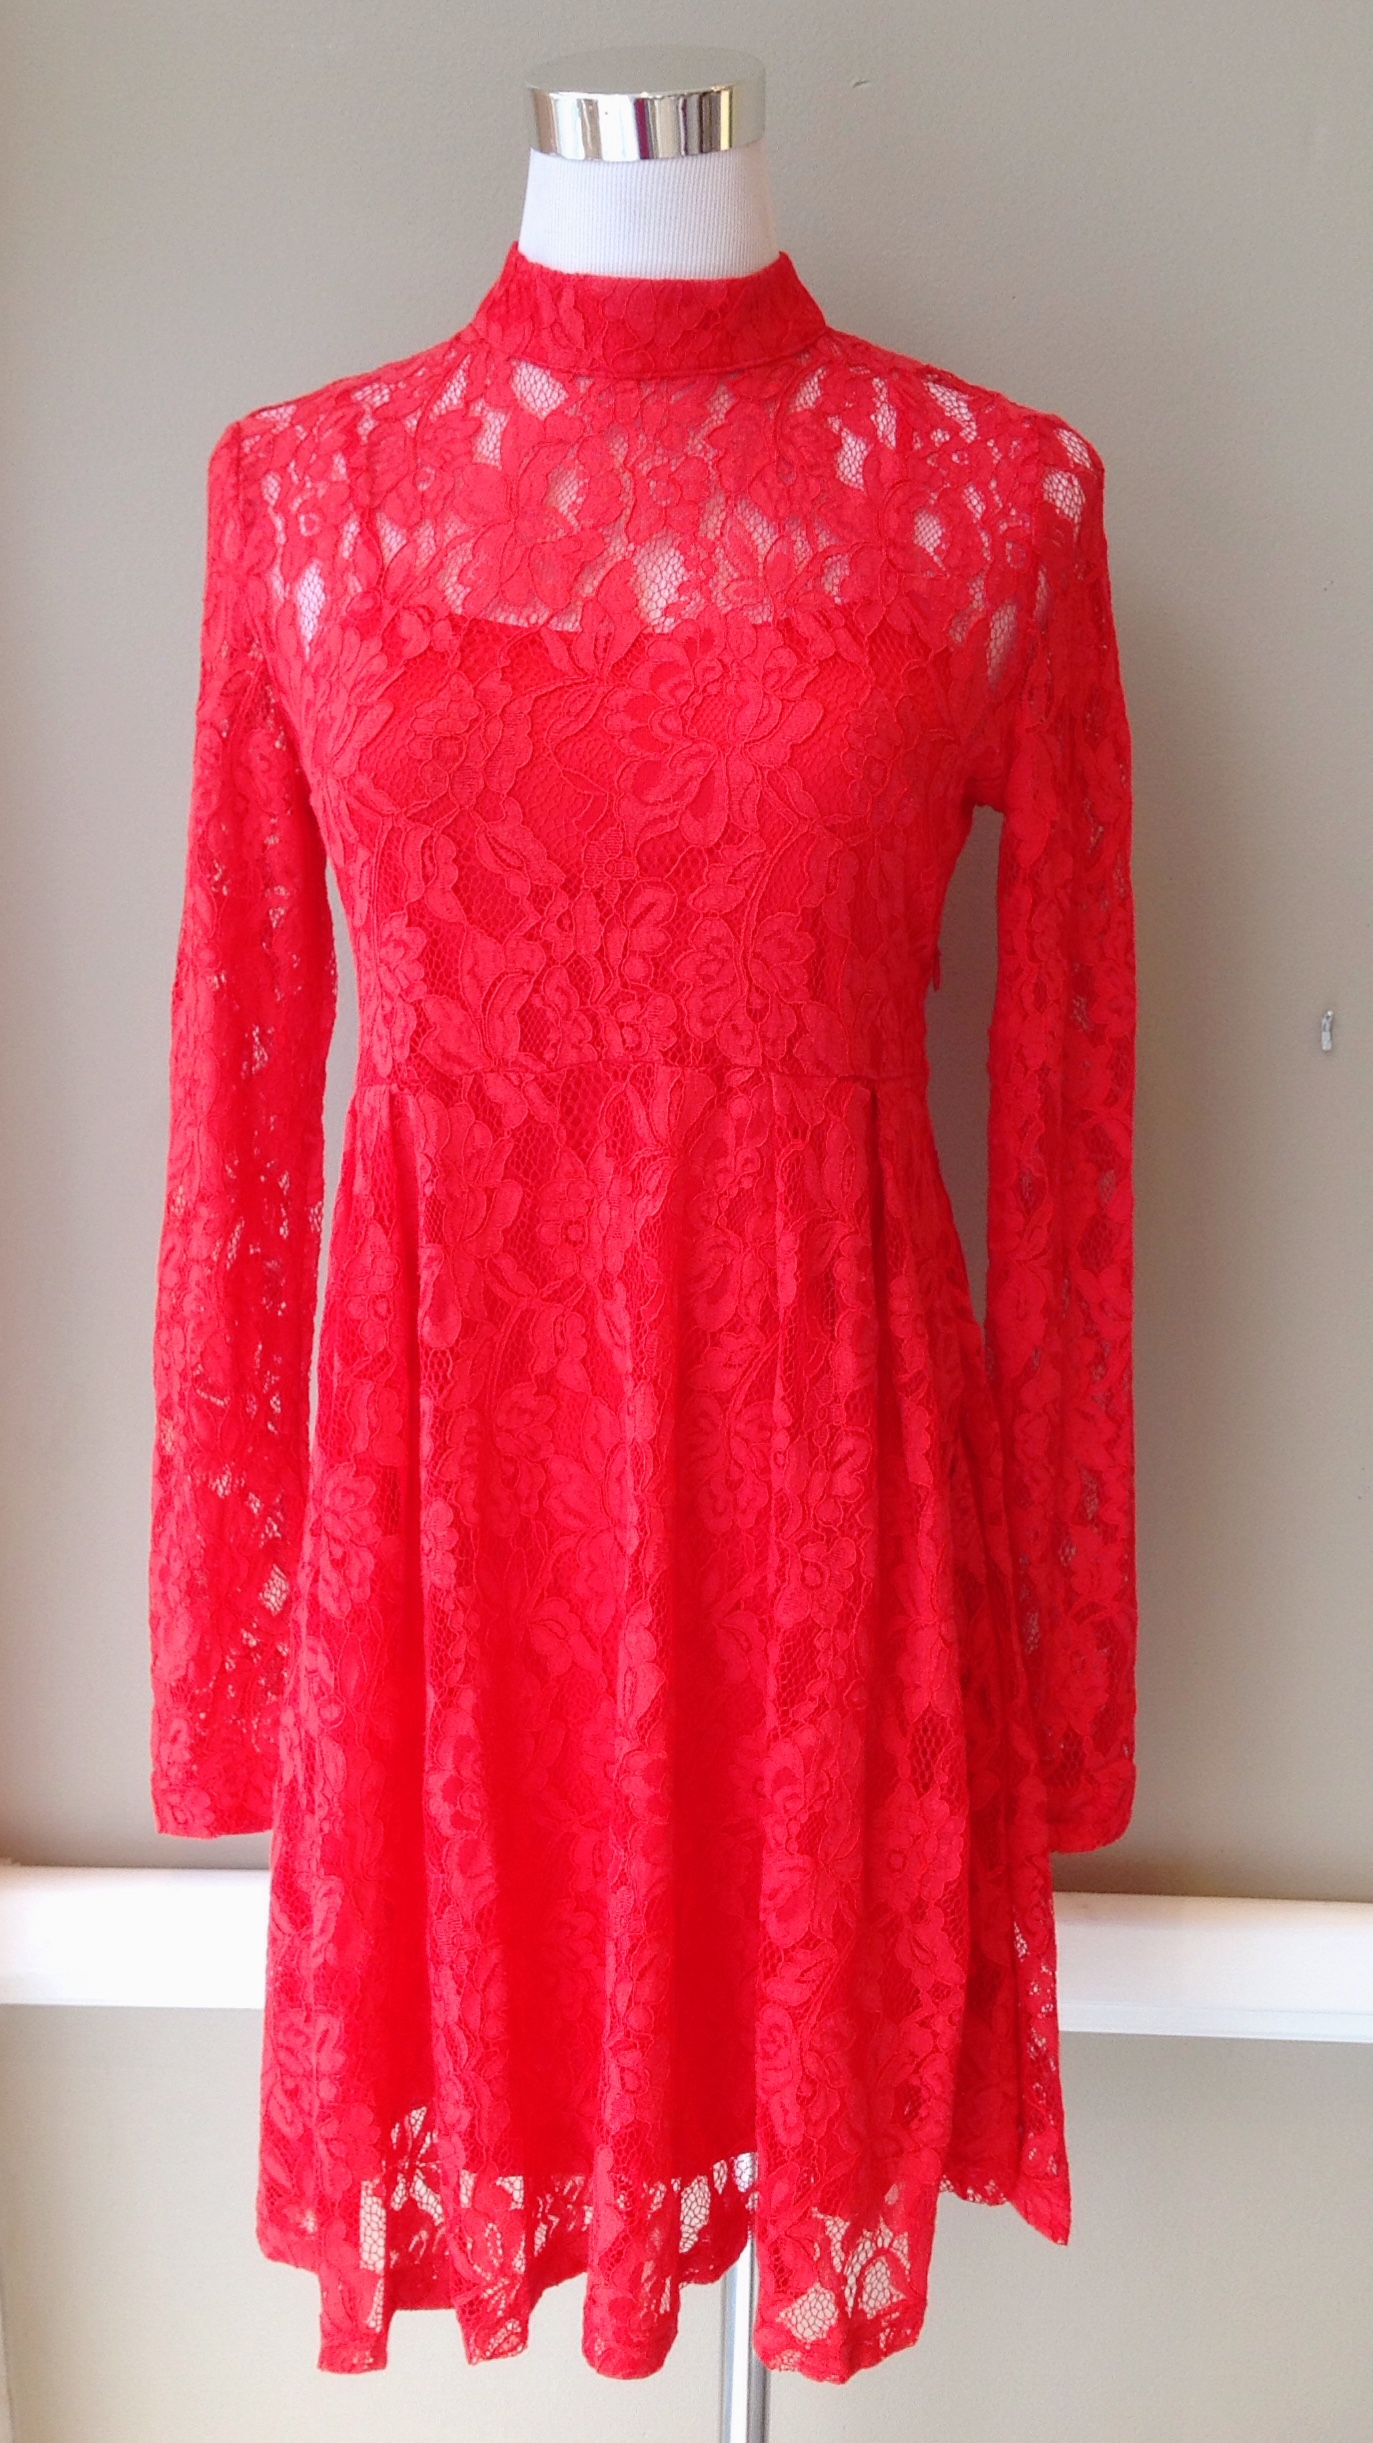 Long sleeve lace dress with mock neck and matching slip, $54